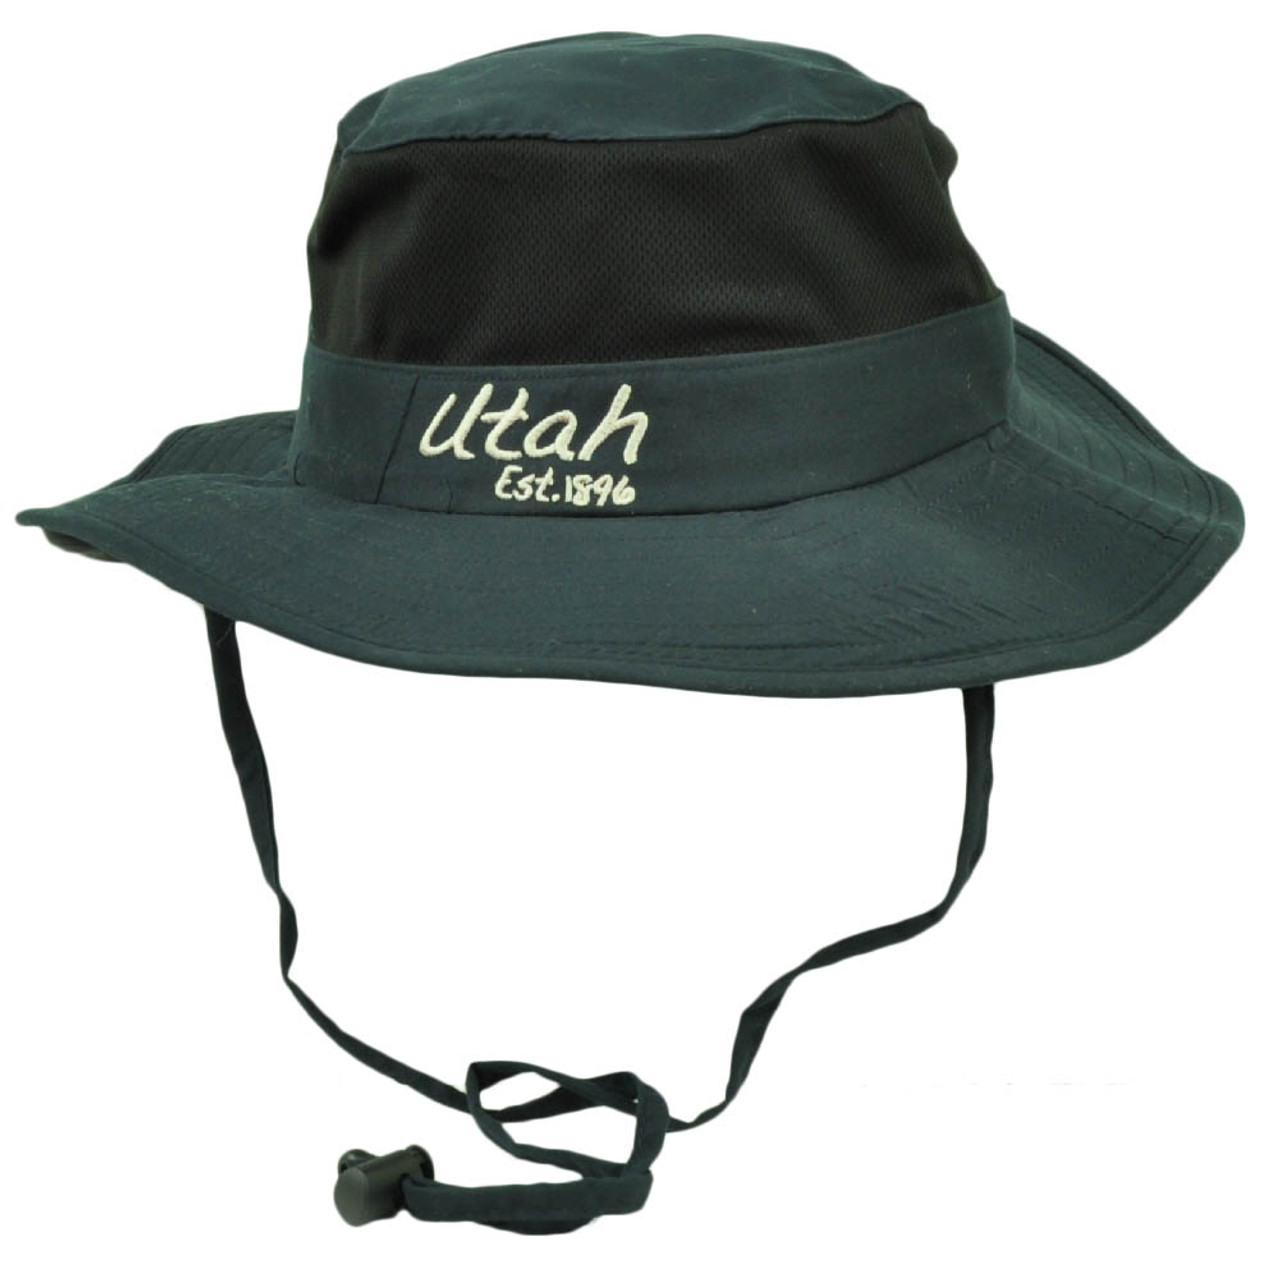 b587ab4288ee74 Utah State Navy Blue Booney Sun bucket Hat Chin Strap Mesh Band Outdoors  USA - Cap Store Online.com